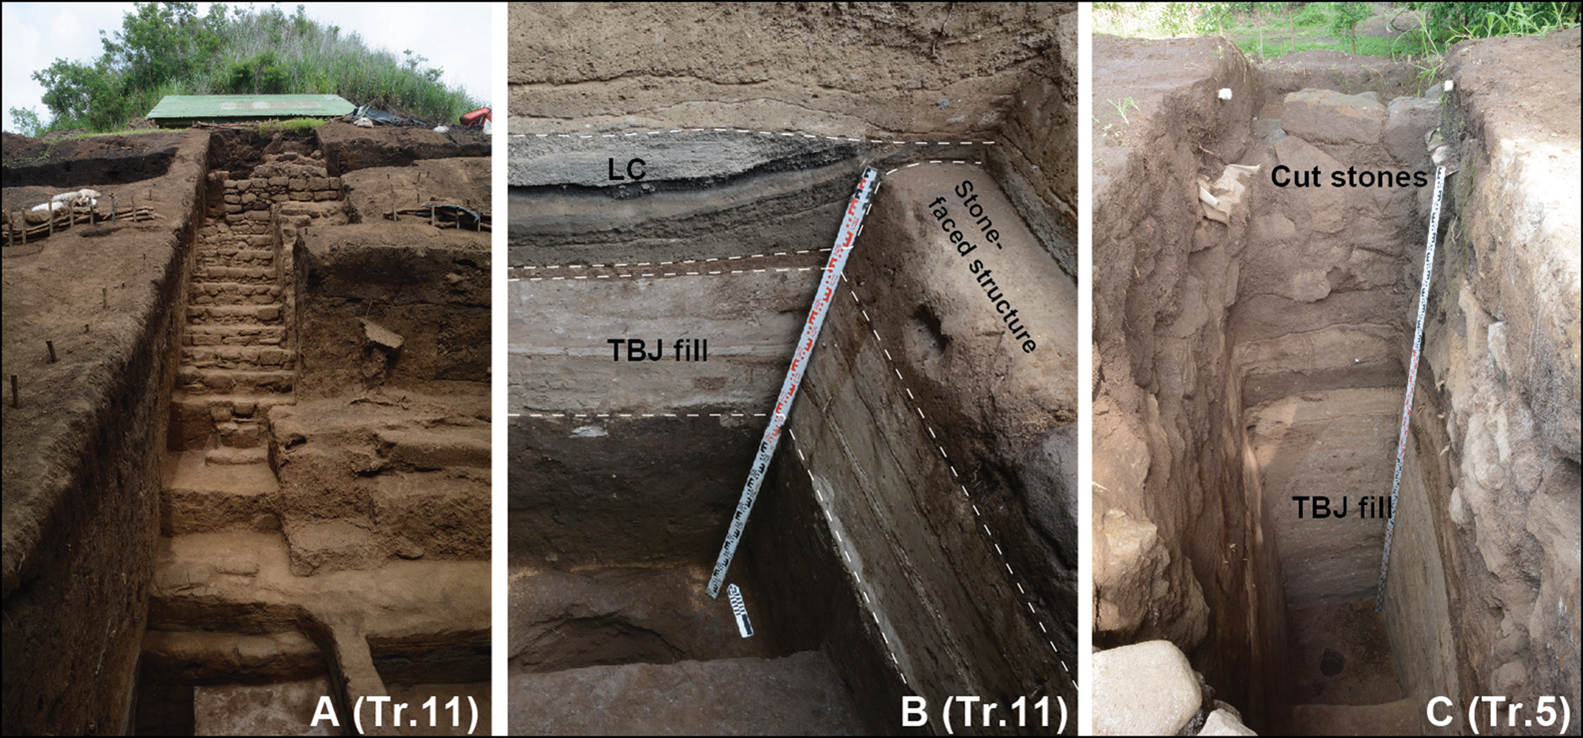 Structures at San Andres with designated layers. Credit: Akira Ichikawa / Antiquity, 2021